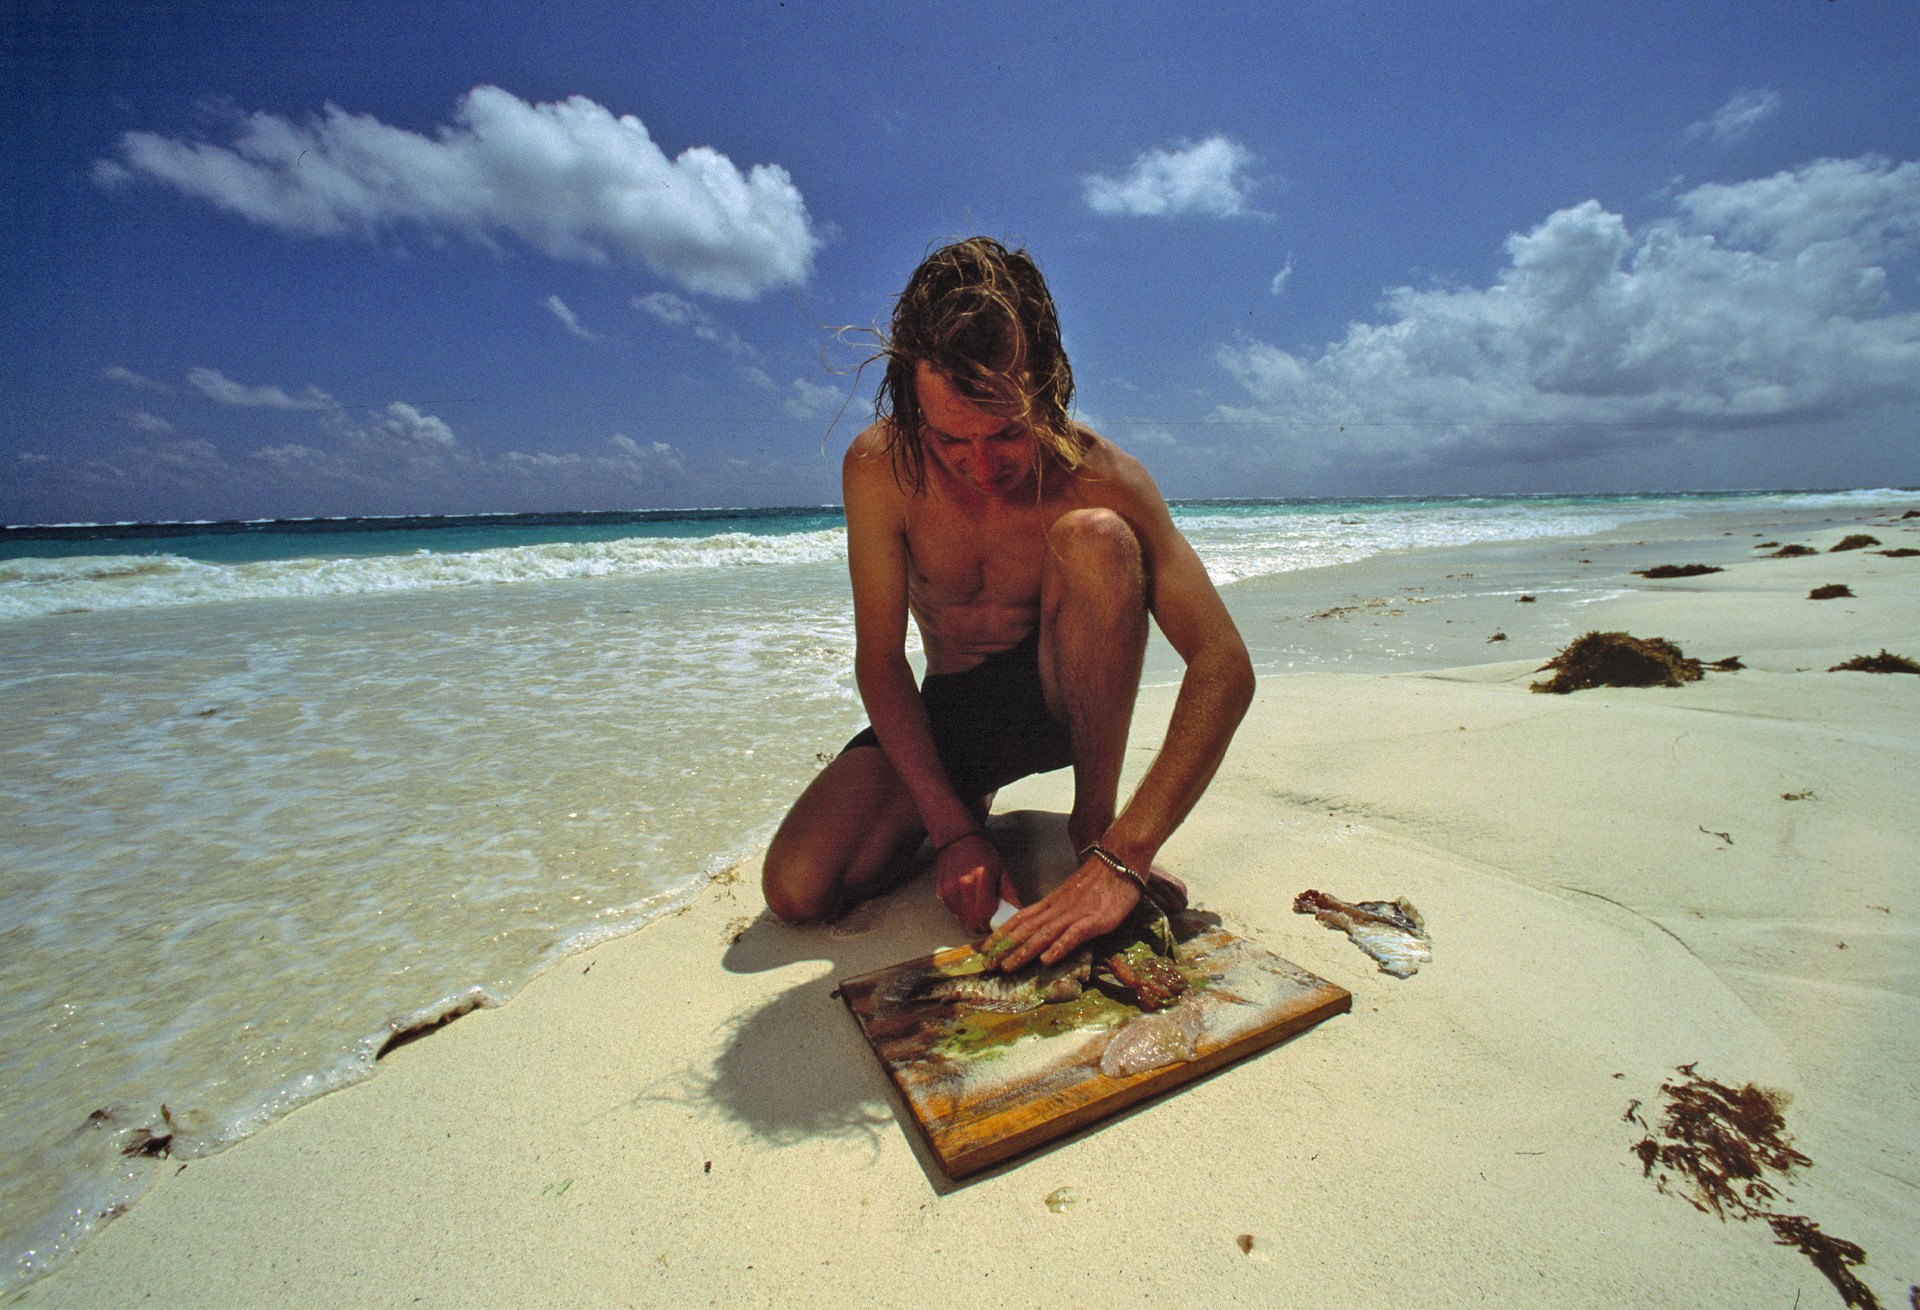 Joshua cleaning a parrot fish on the beach in Tulum